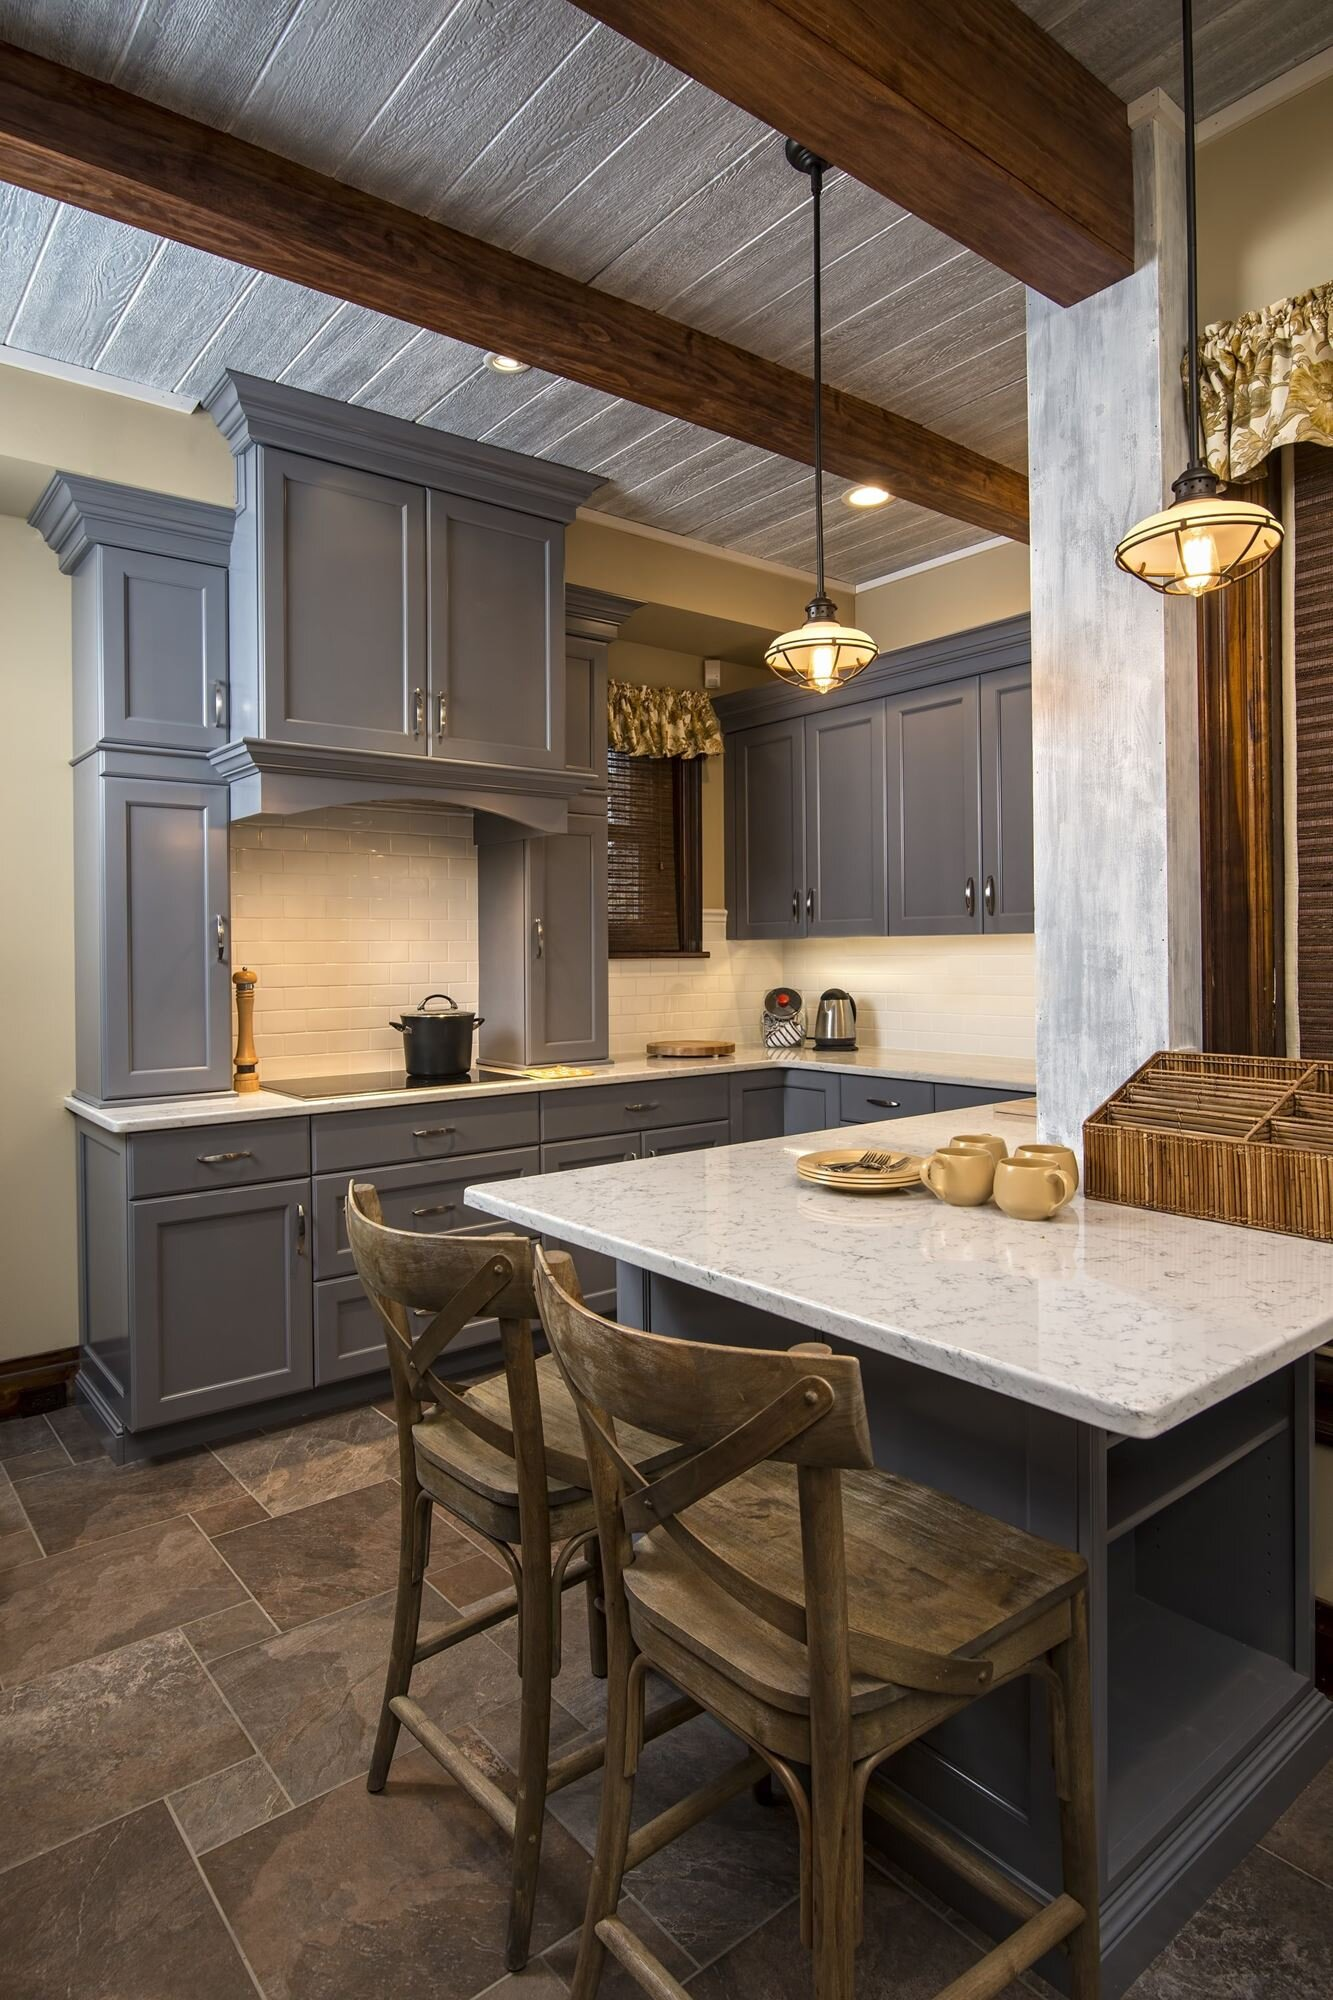 How To Decide Guide Kitchen Refresh Or Renovate Bailiwick